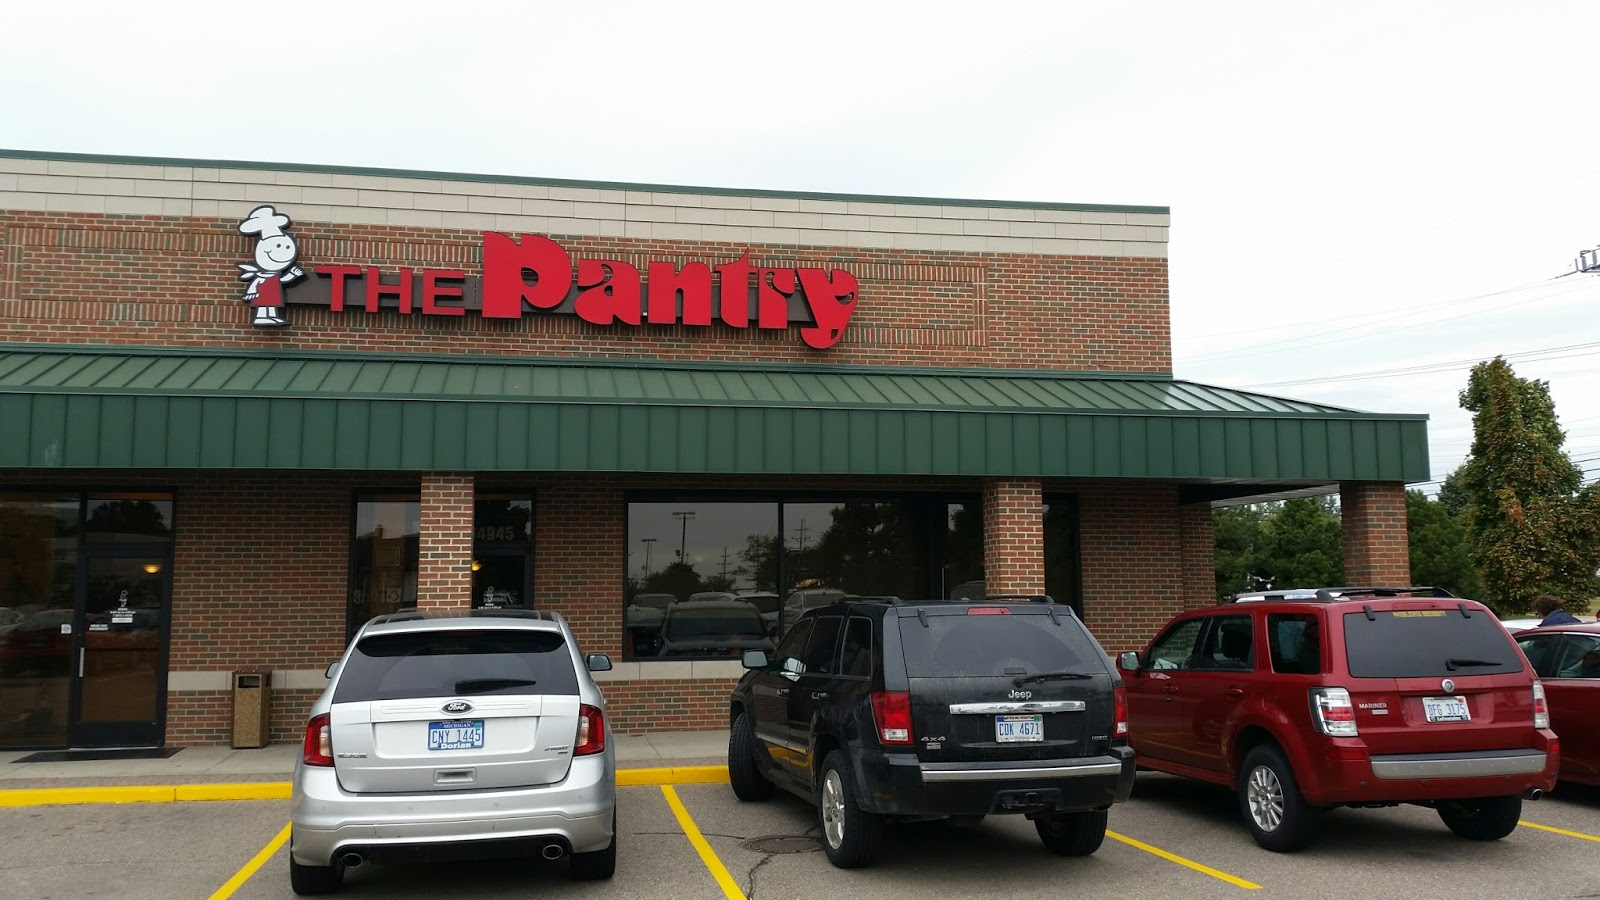 The Pantry Restaurant in Clinton Township, MI